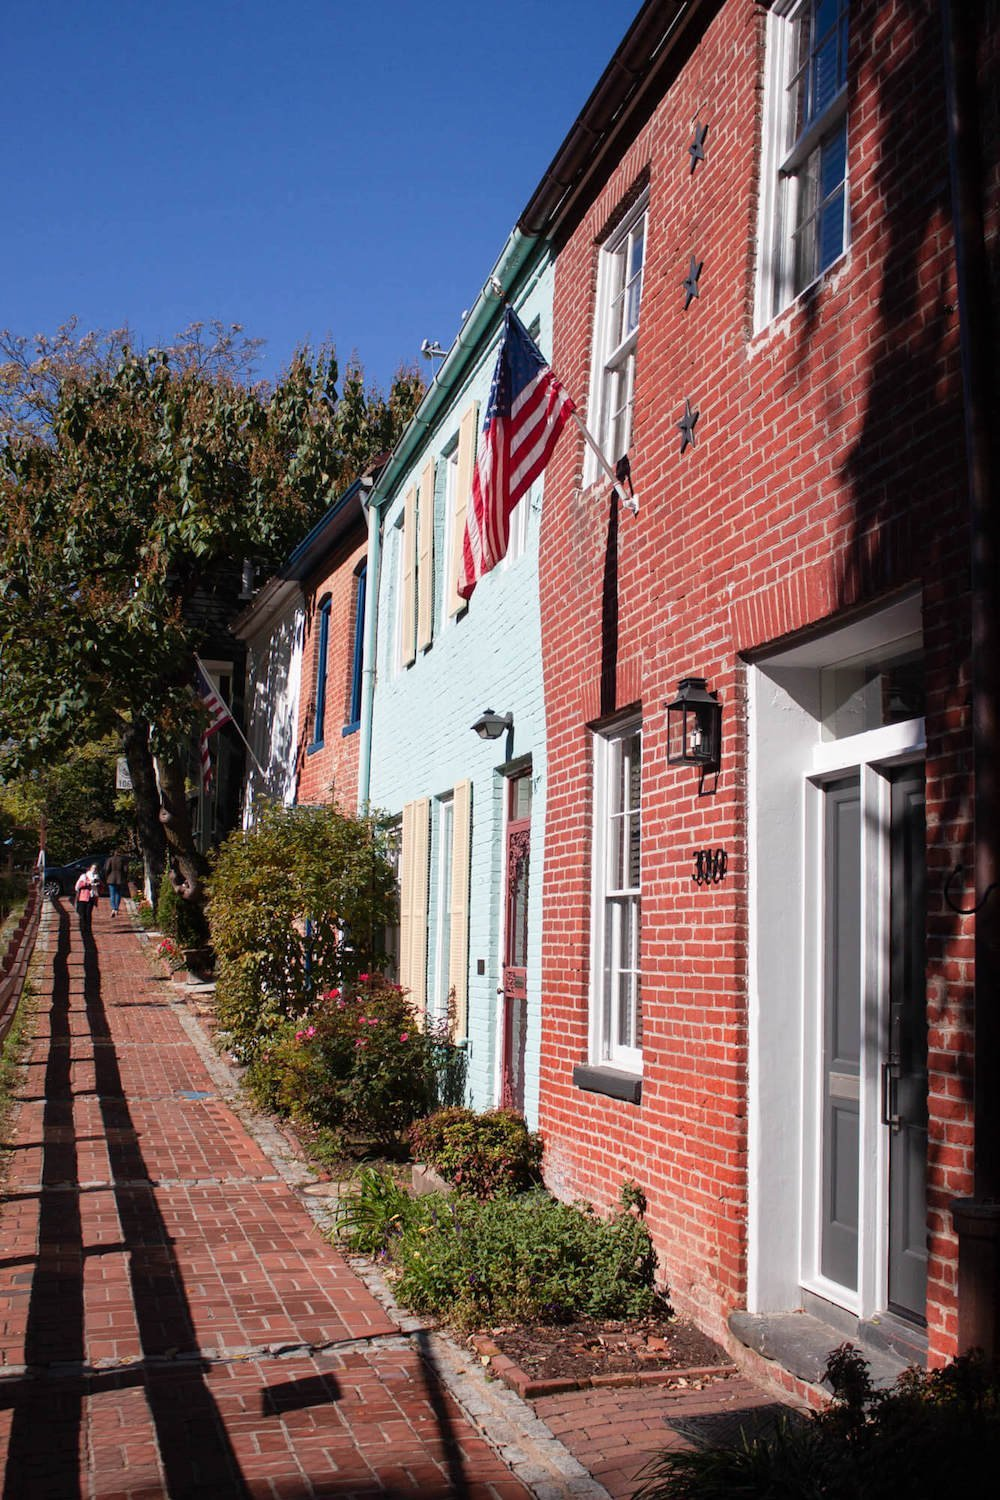 Some nice rowhouses in D.C.